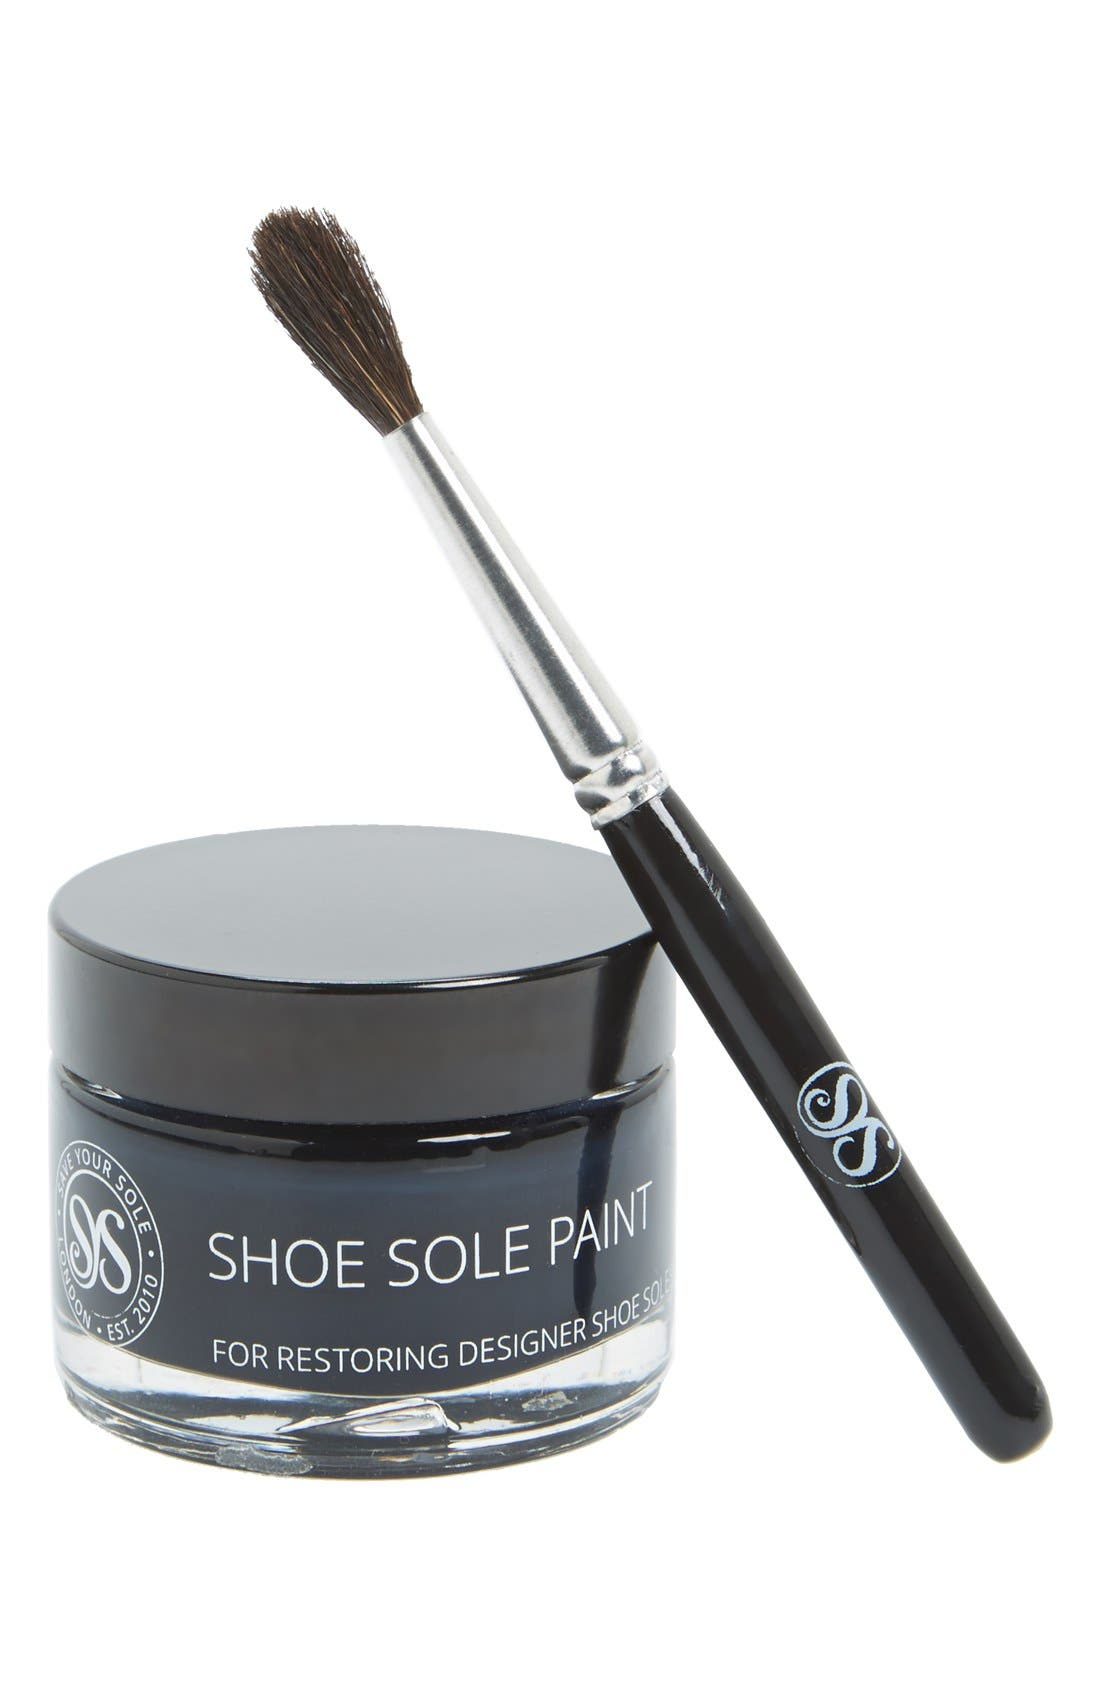 Main Image - Save Your Sole Sole Repair Paint Kit